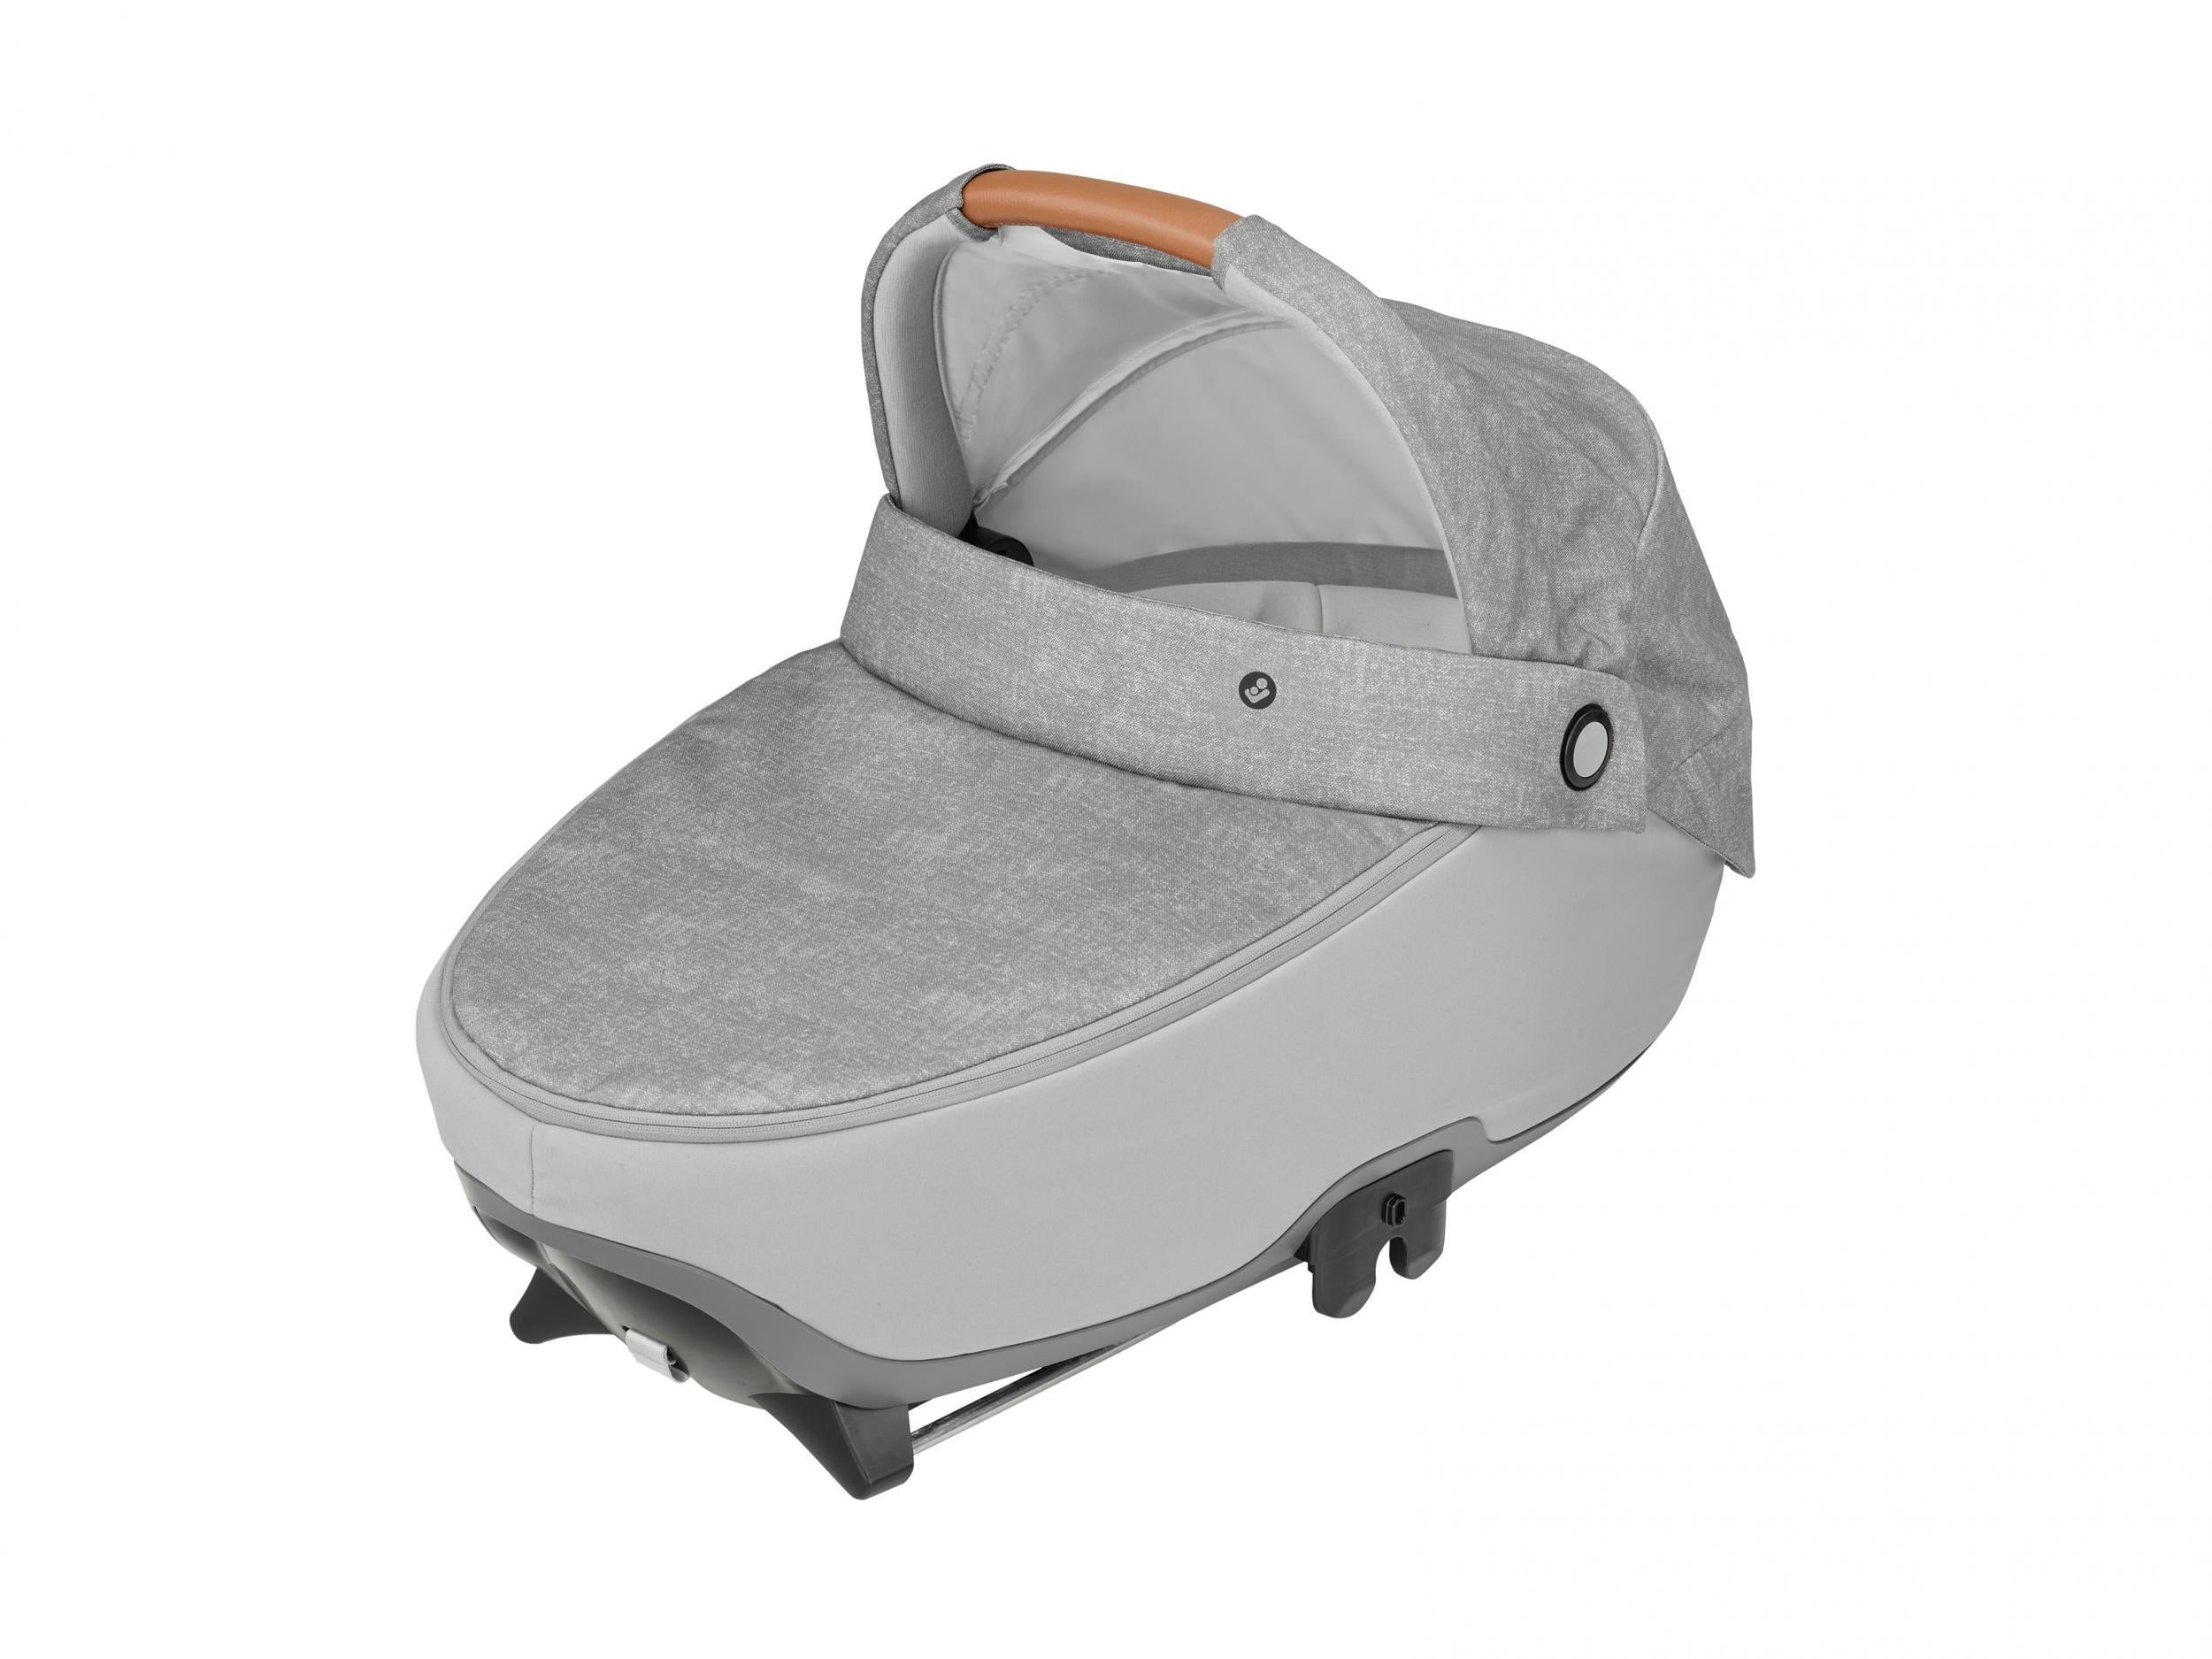 Best Infant Car Seat Choose From Group 0 0 And I Size